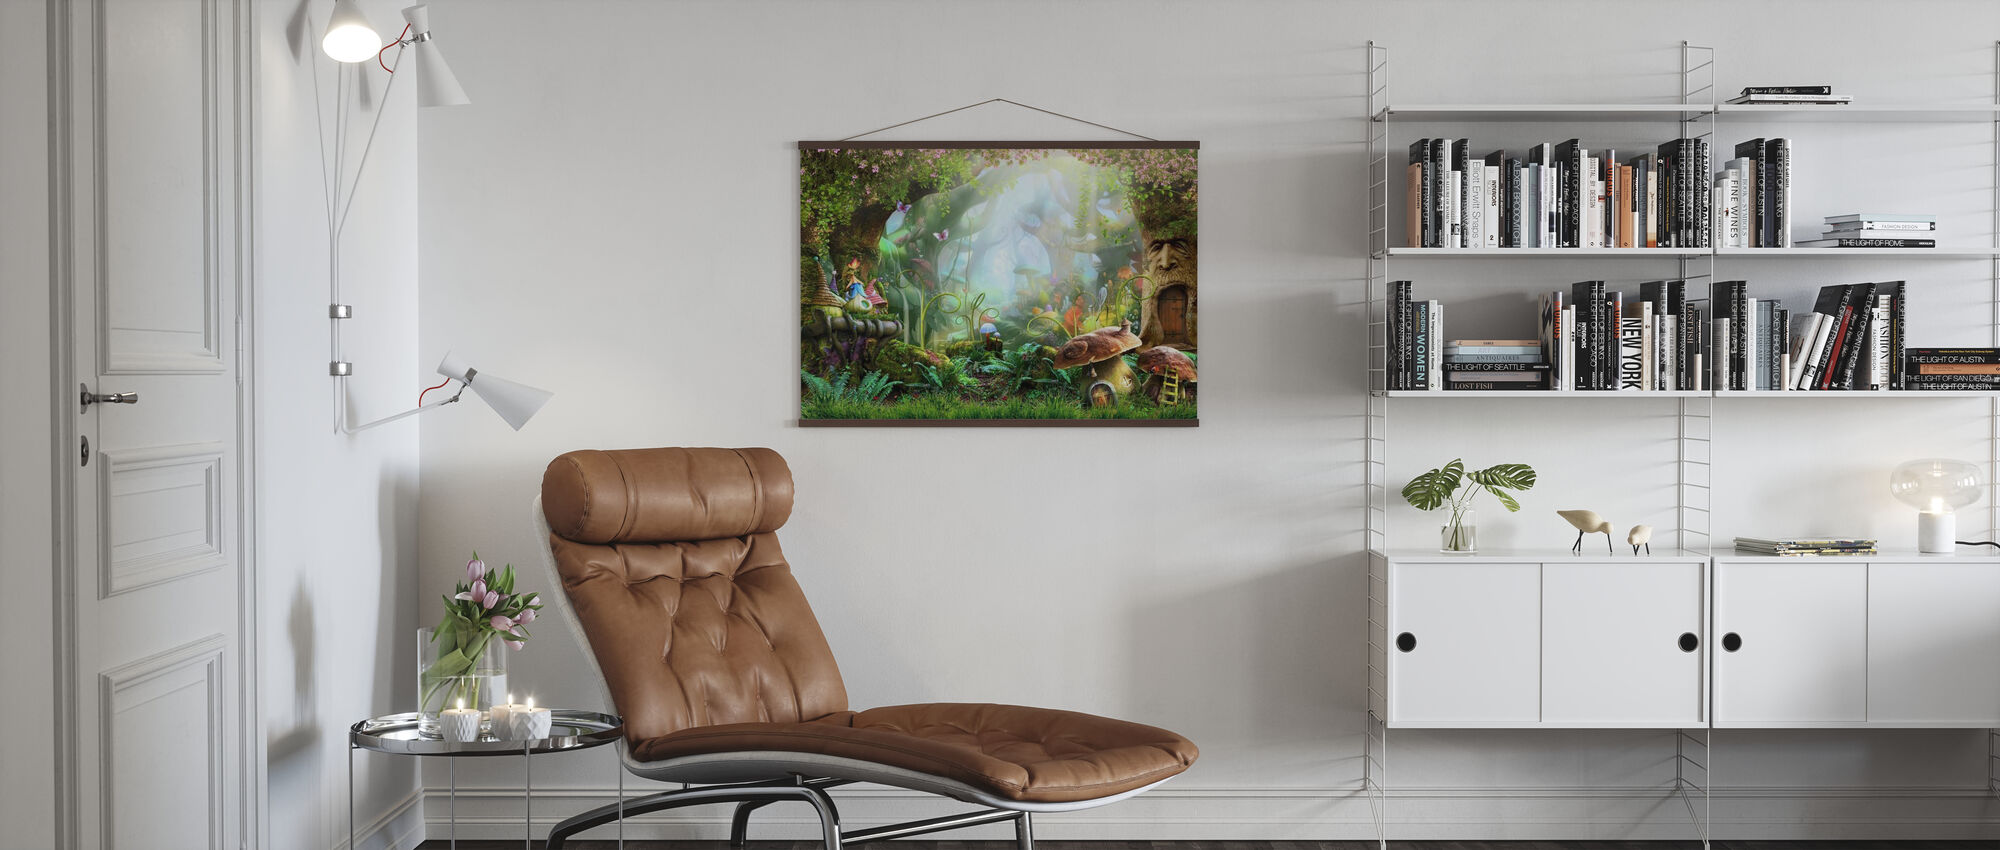 Enchanted Forest - Poster - Living Room